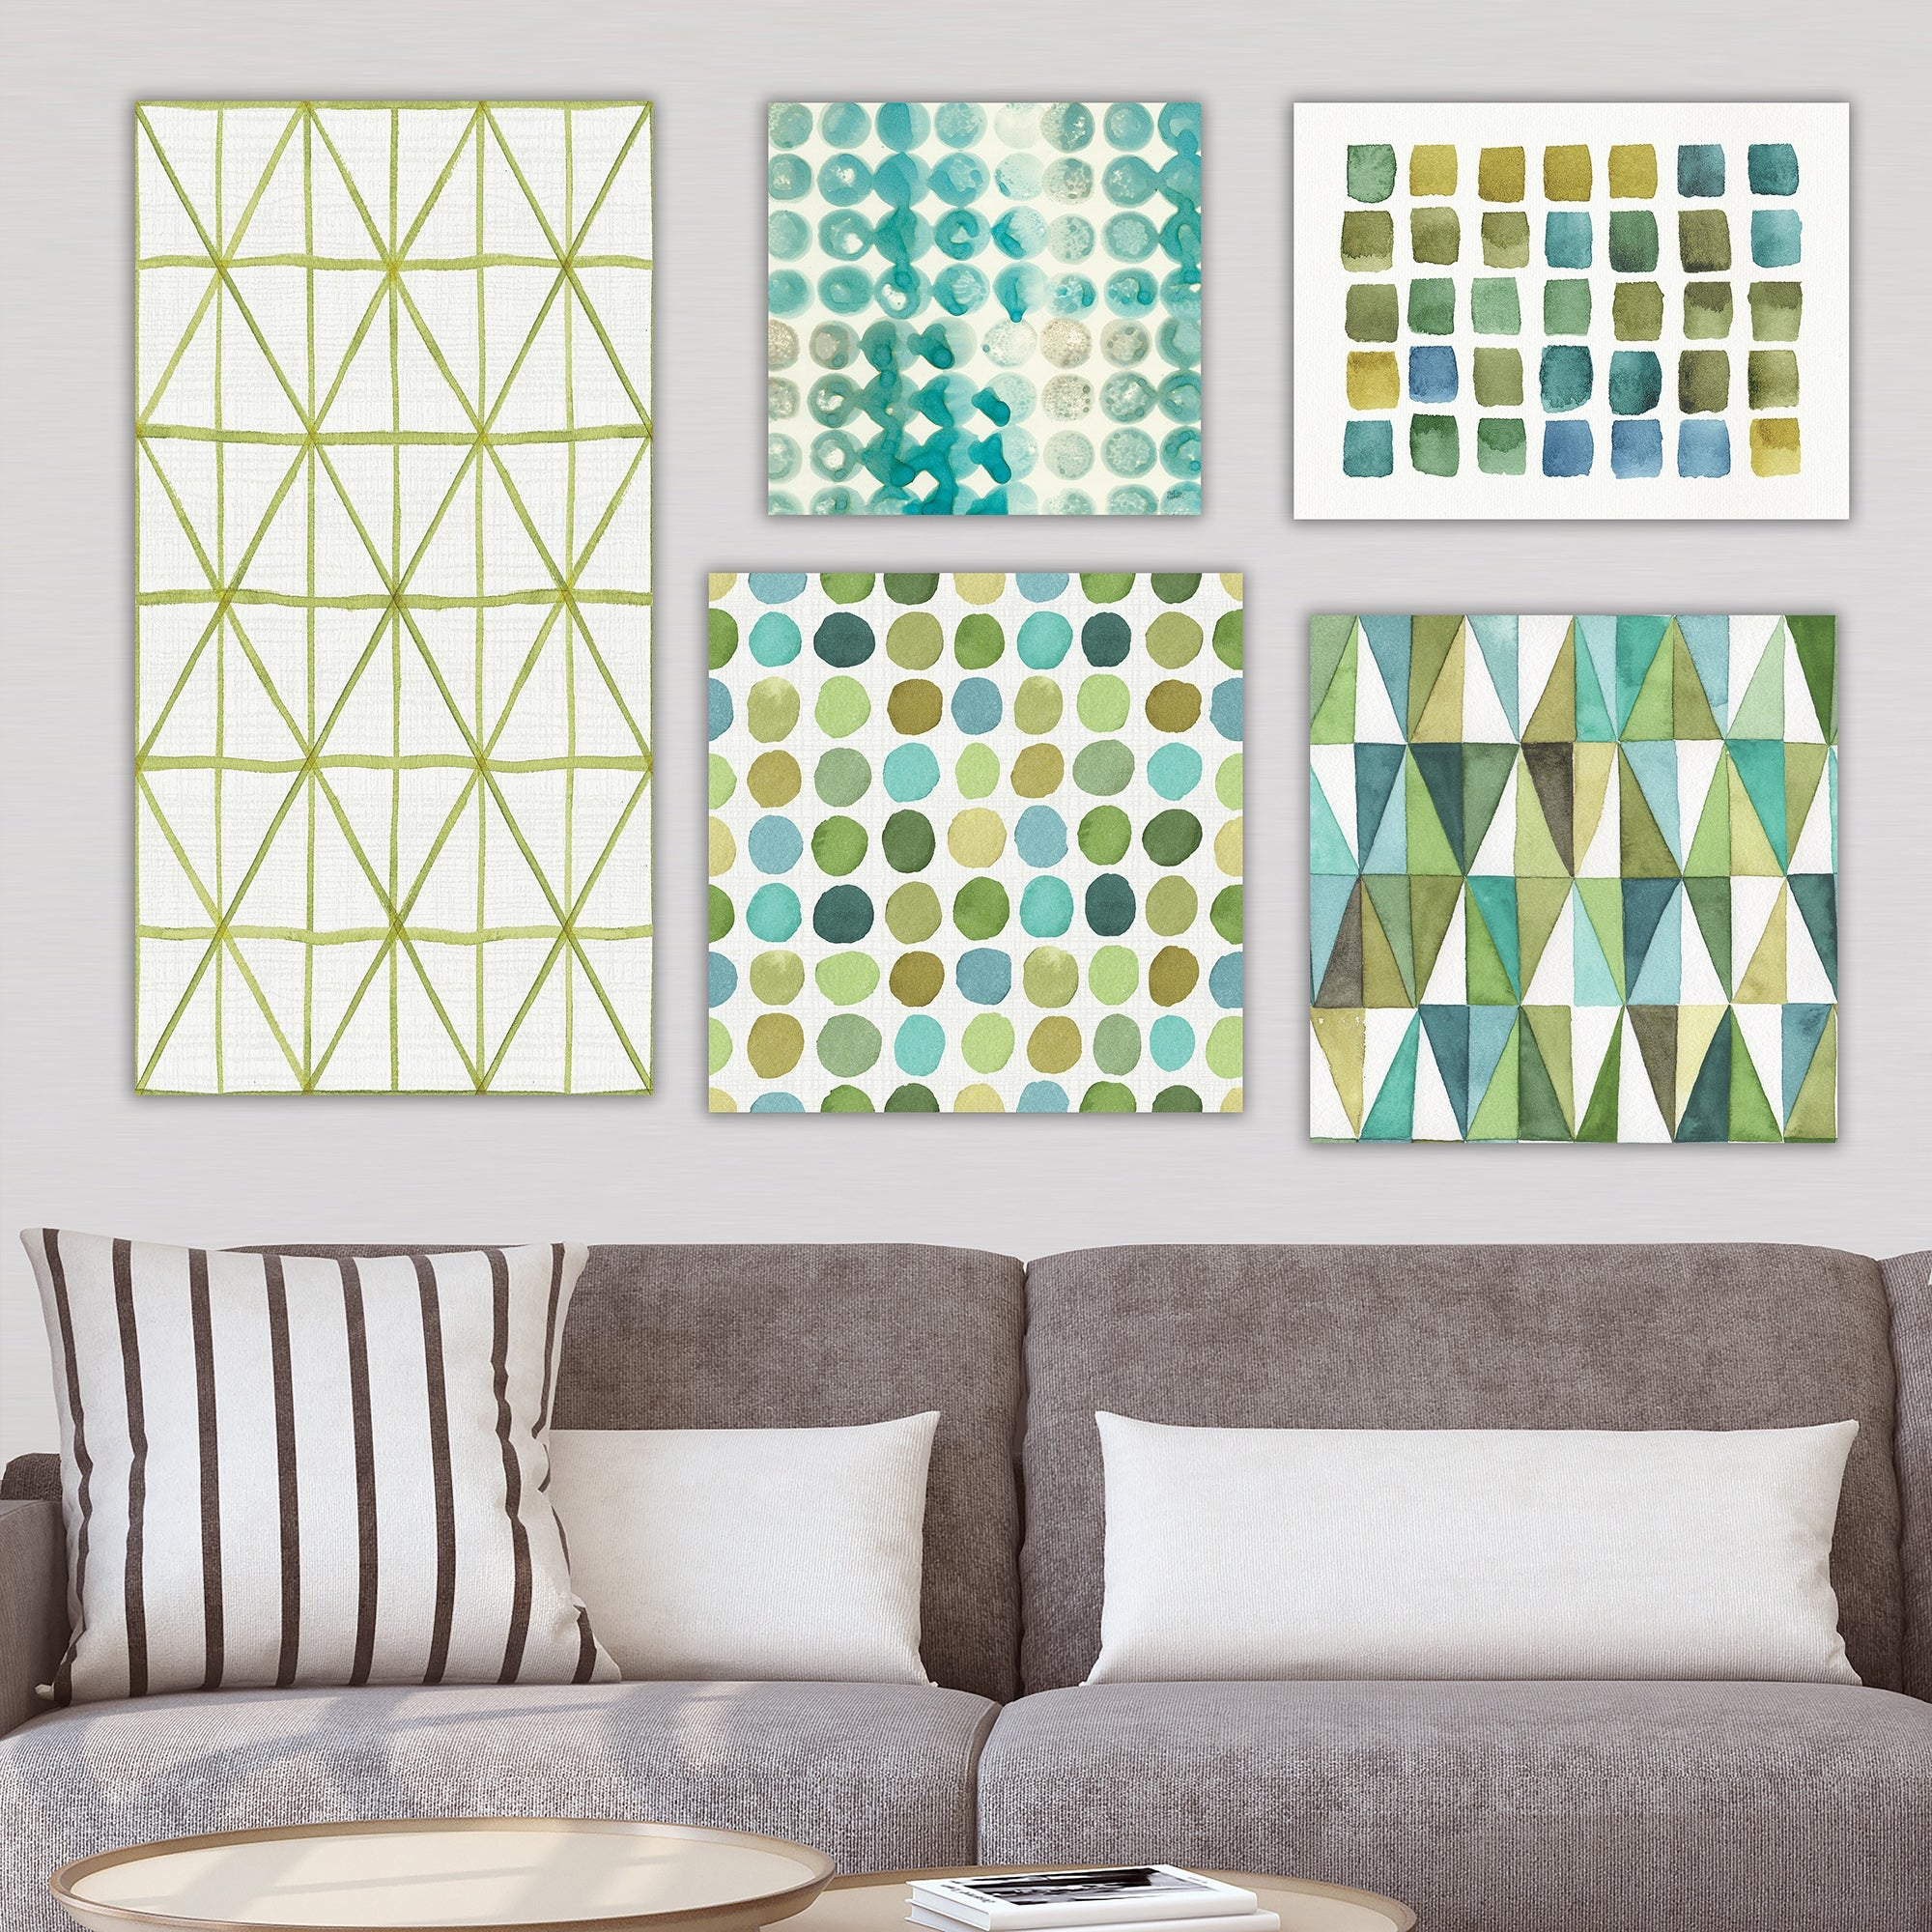 Designart Shades Of Green Collection Abstract Wall Art Set Of 5 Pieces Blue Overstock 26882067